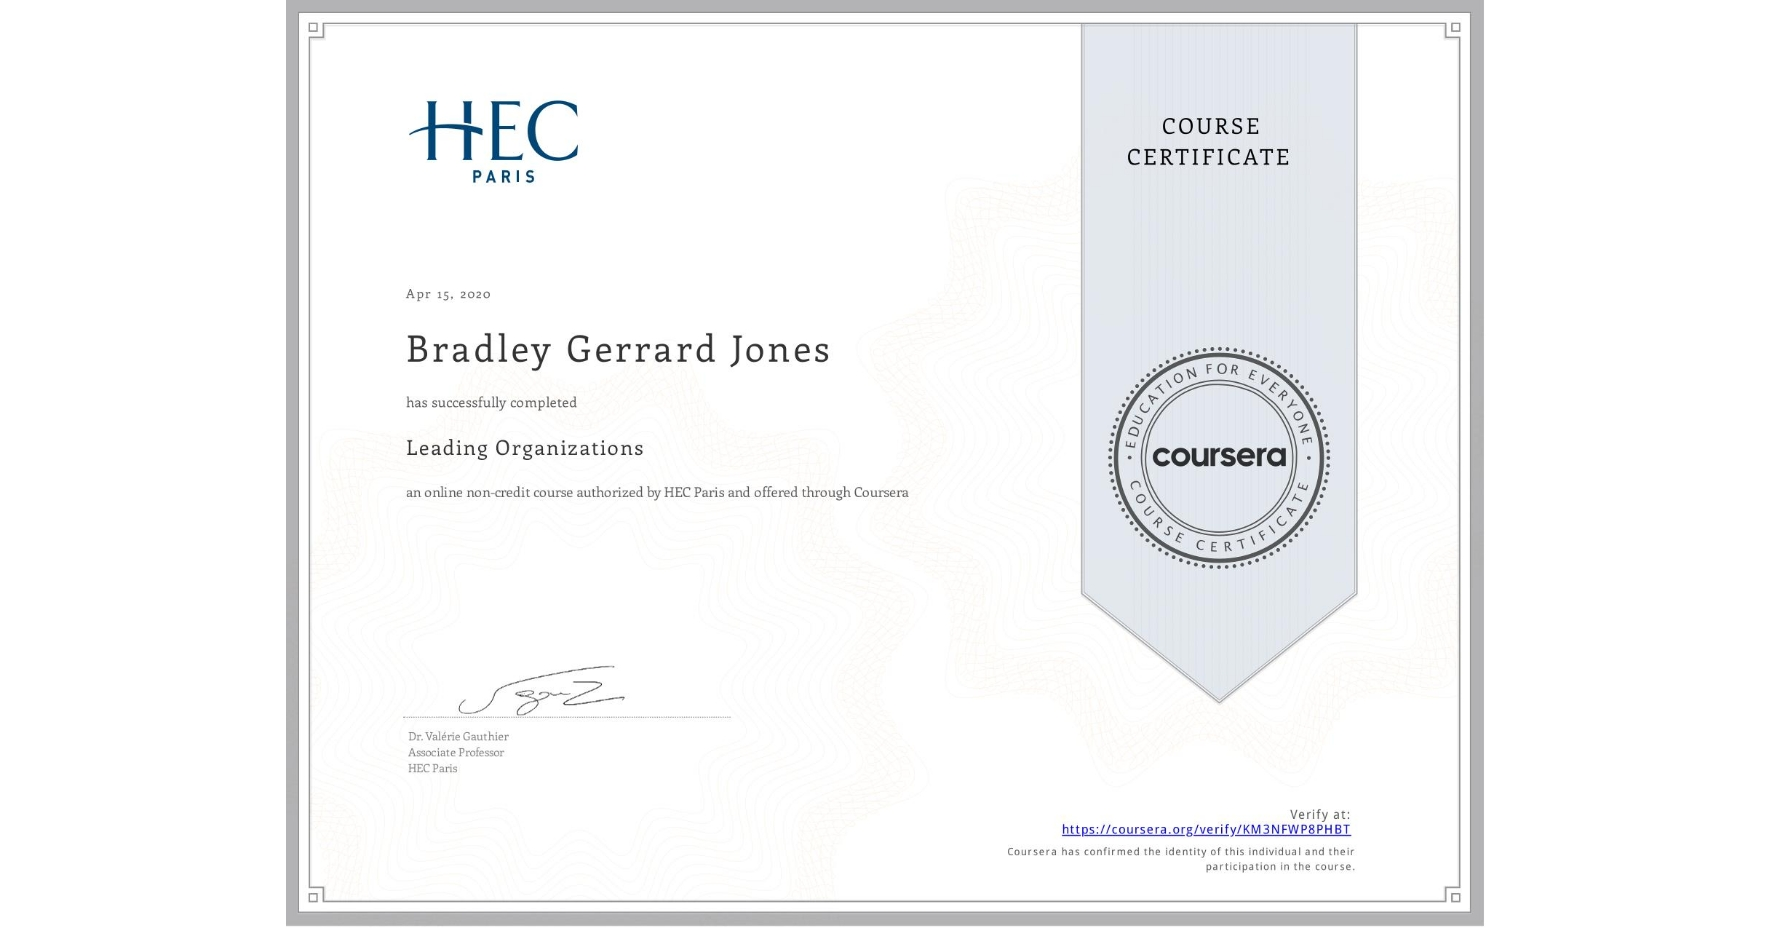 View certificate for Bradley Gerrard Jones, Leading Organizations, an online non-credit course authorized by HEC Paris and offered through Coursera